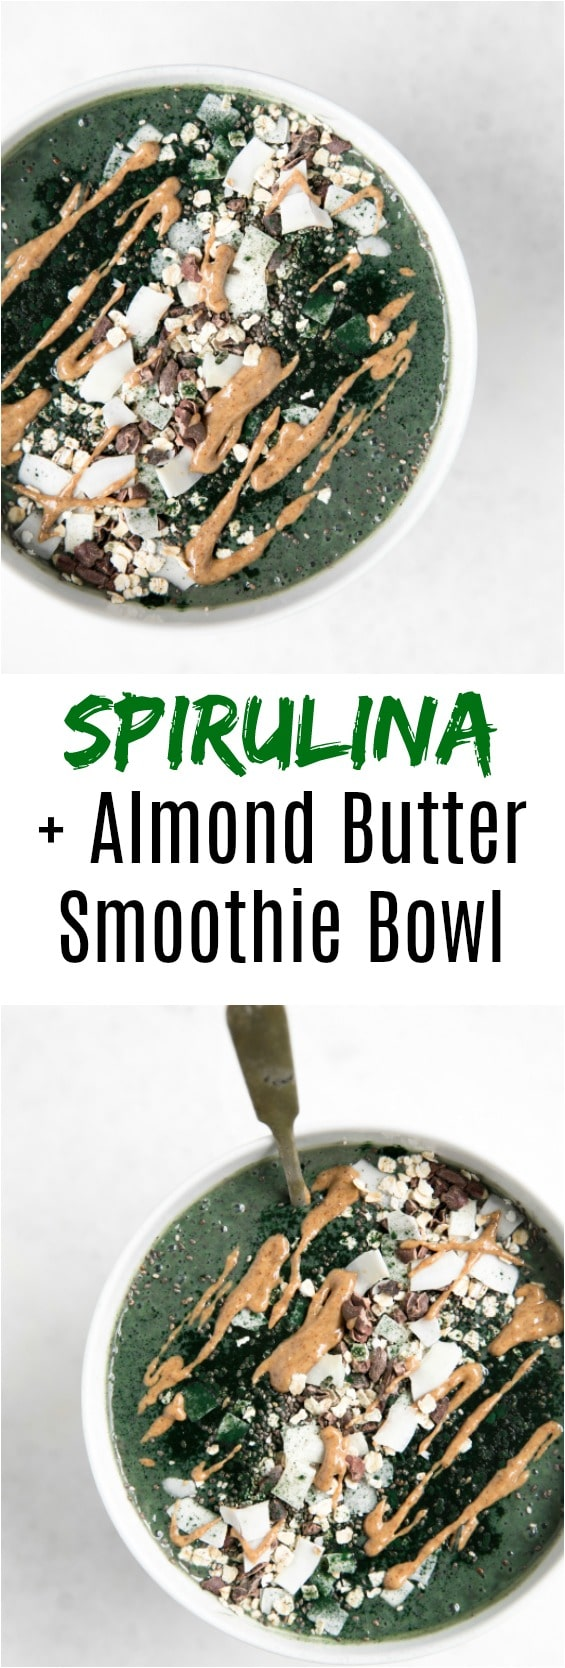 Almond Butter and Spirulina Smoothie Bowl.  #smoothie #almond #spriulina #healthy #breakfast